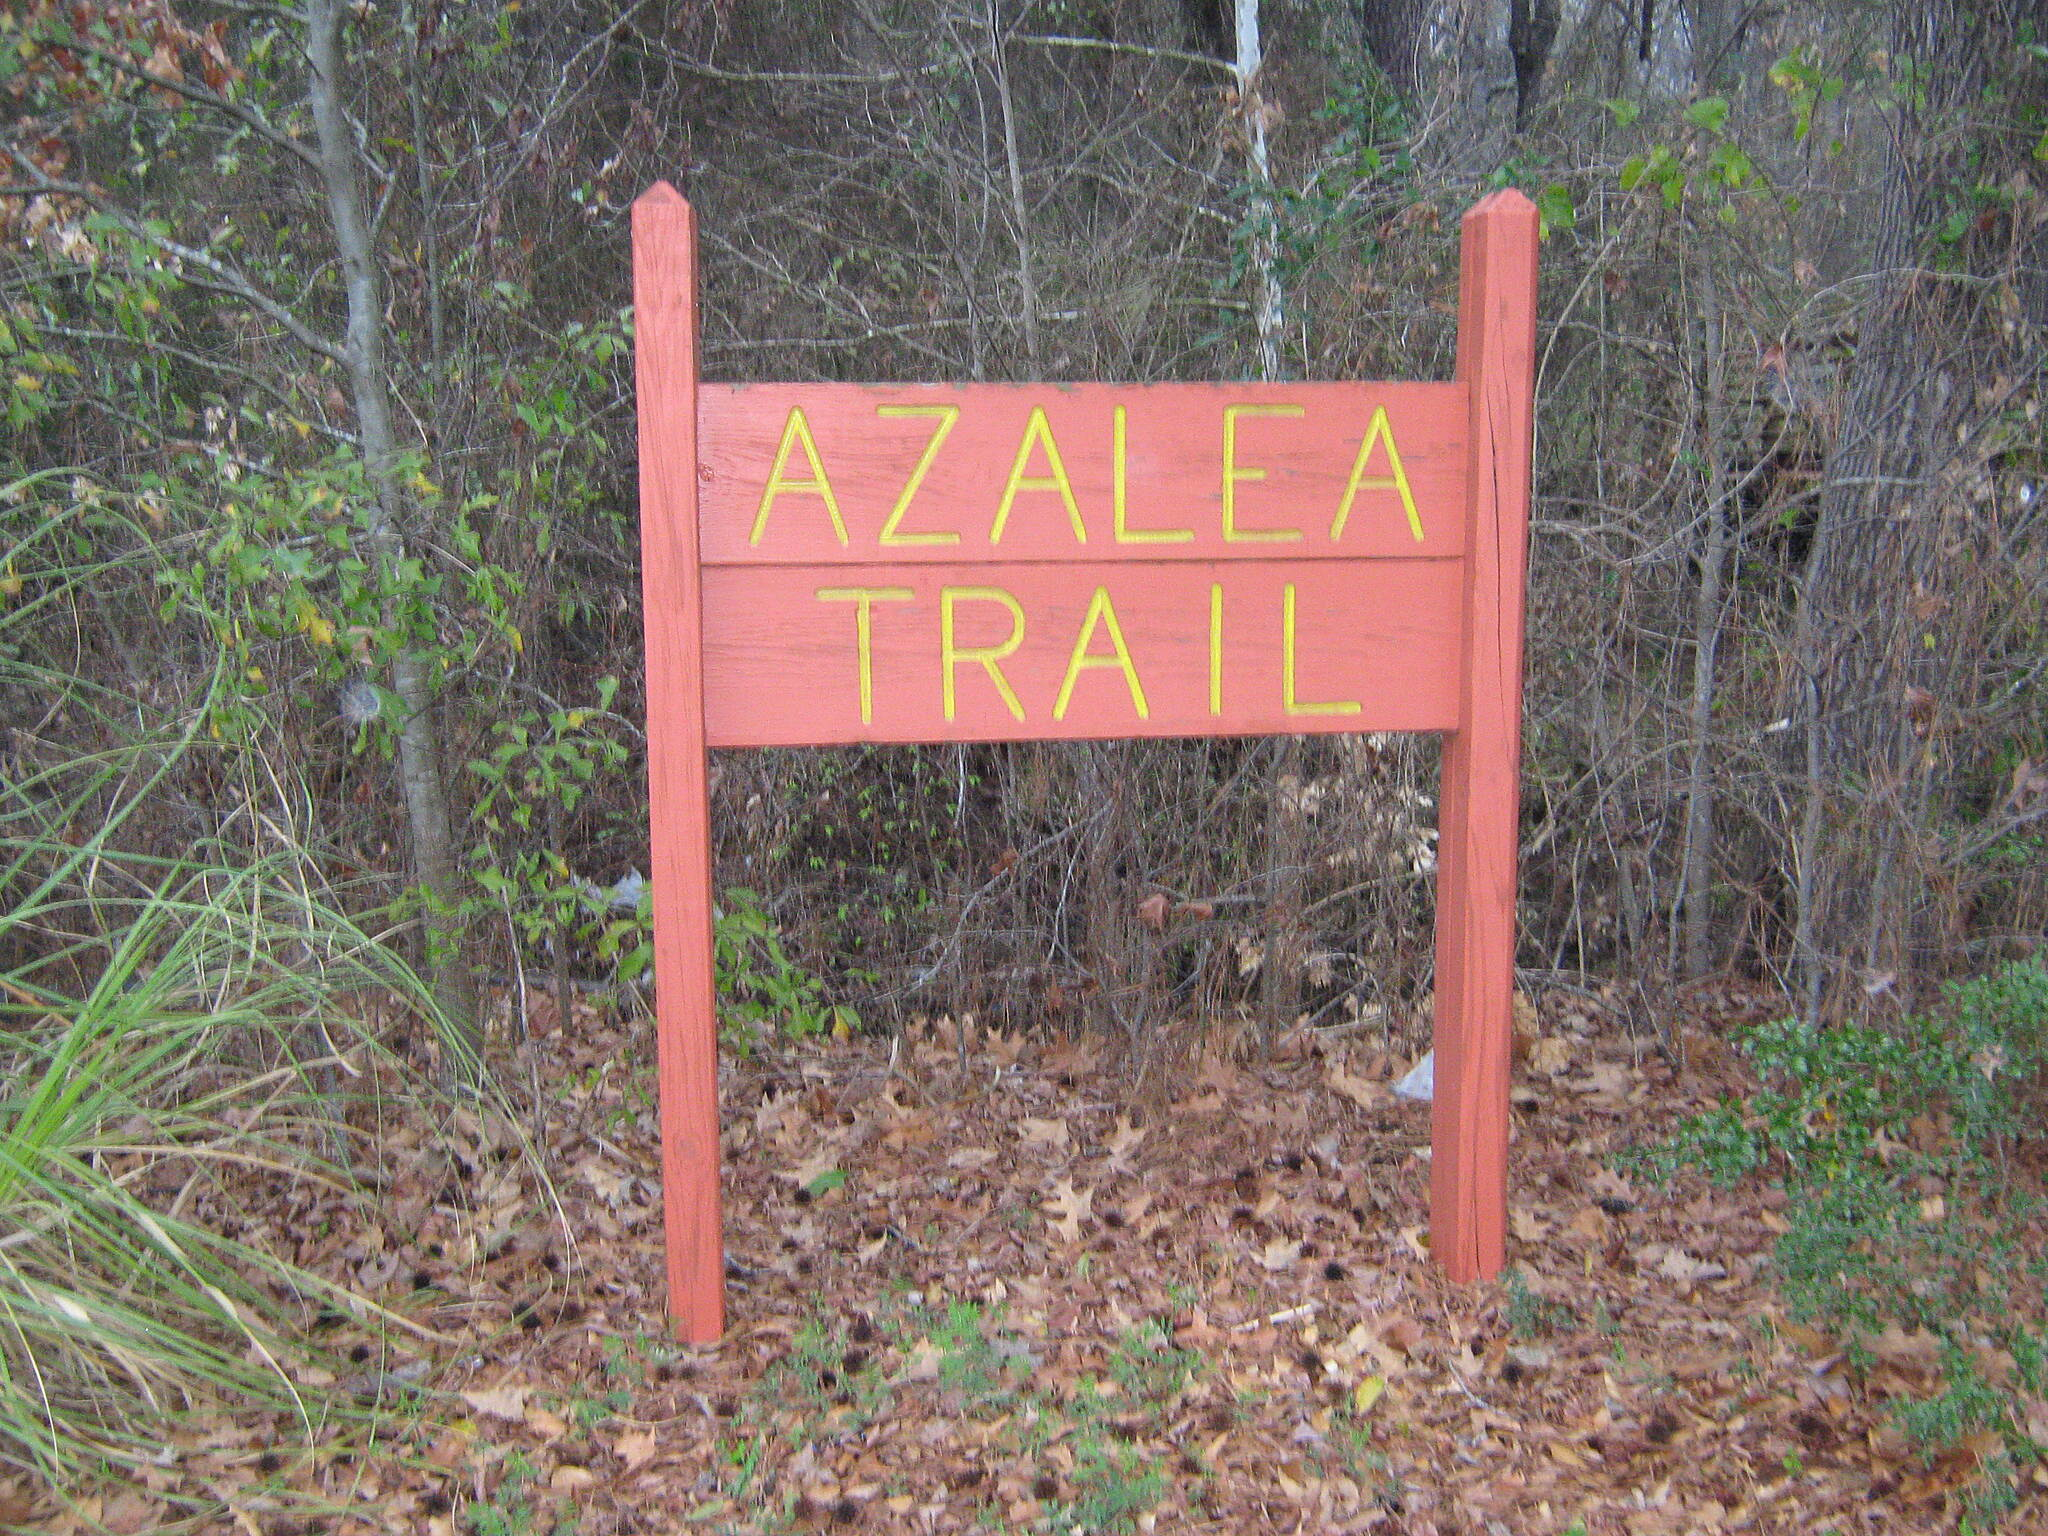 Azalea Trail Azalea Trail - Lufkin Entrance to the trail.